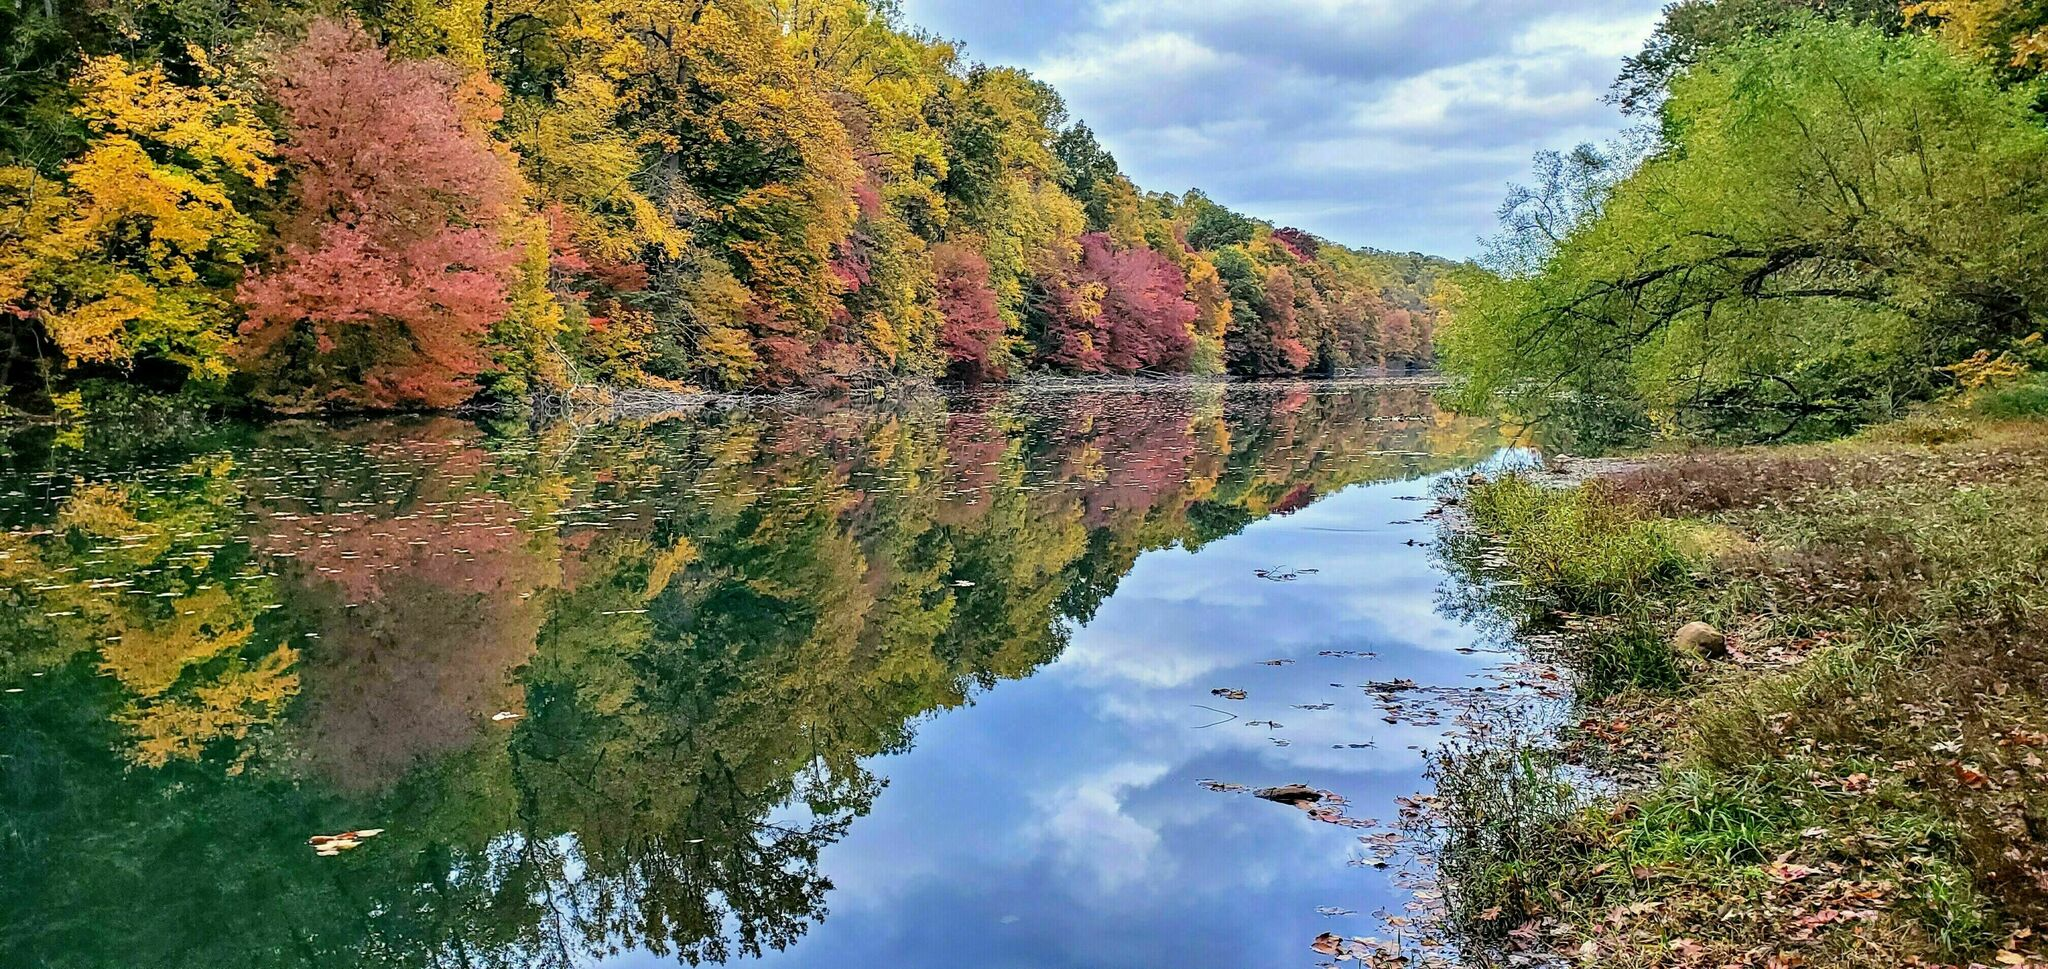 The Lake Surprise Loop Might Be One Of The Most Beautiful Short-And-Sweet Hikes To Take In New Jersey